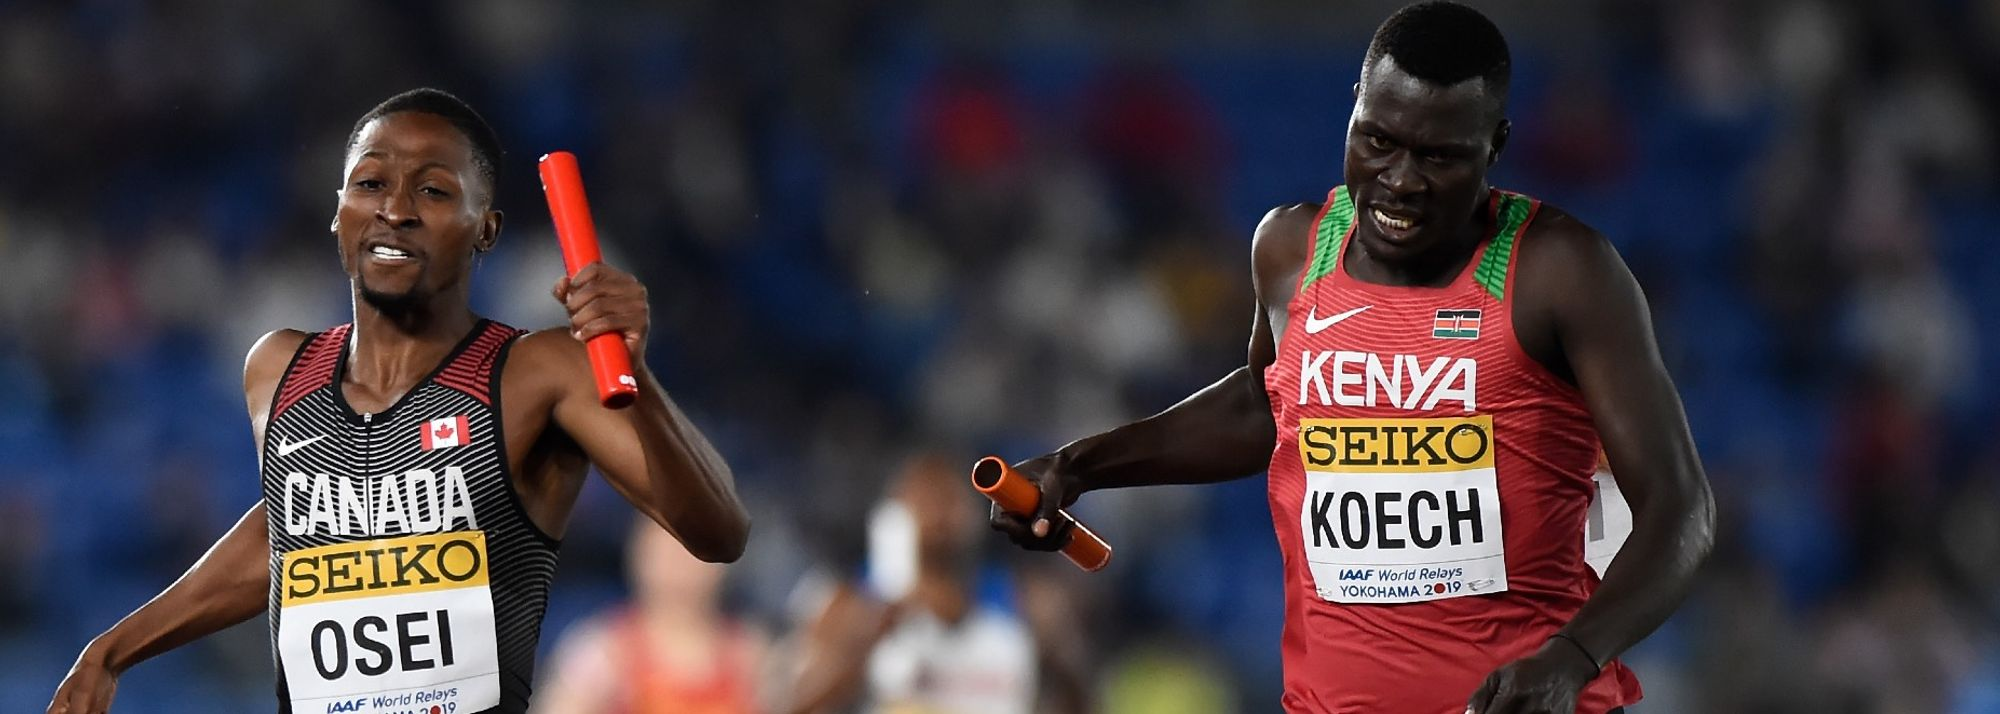 World 800m bronze medallist Ferguson Rotich is among the 31 athletes named on the Kenyan team for the World Athletics Relays Silesia 21 on 1-2 May.